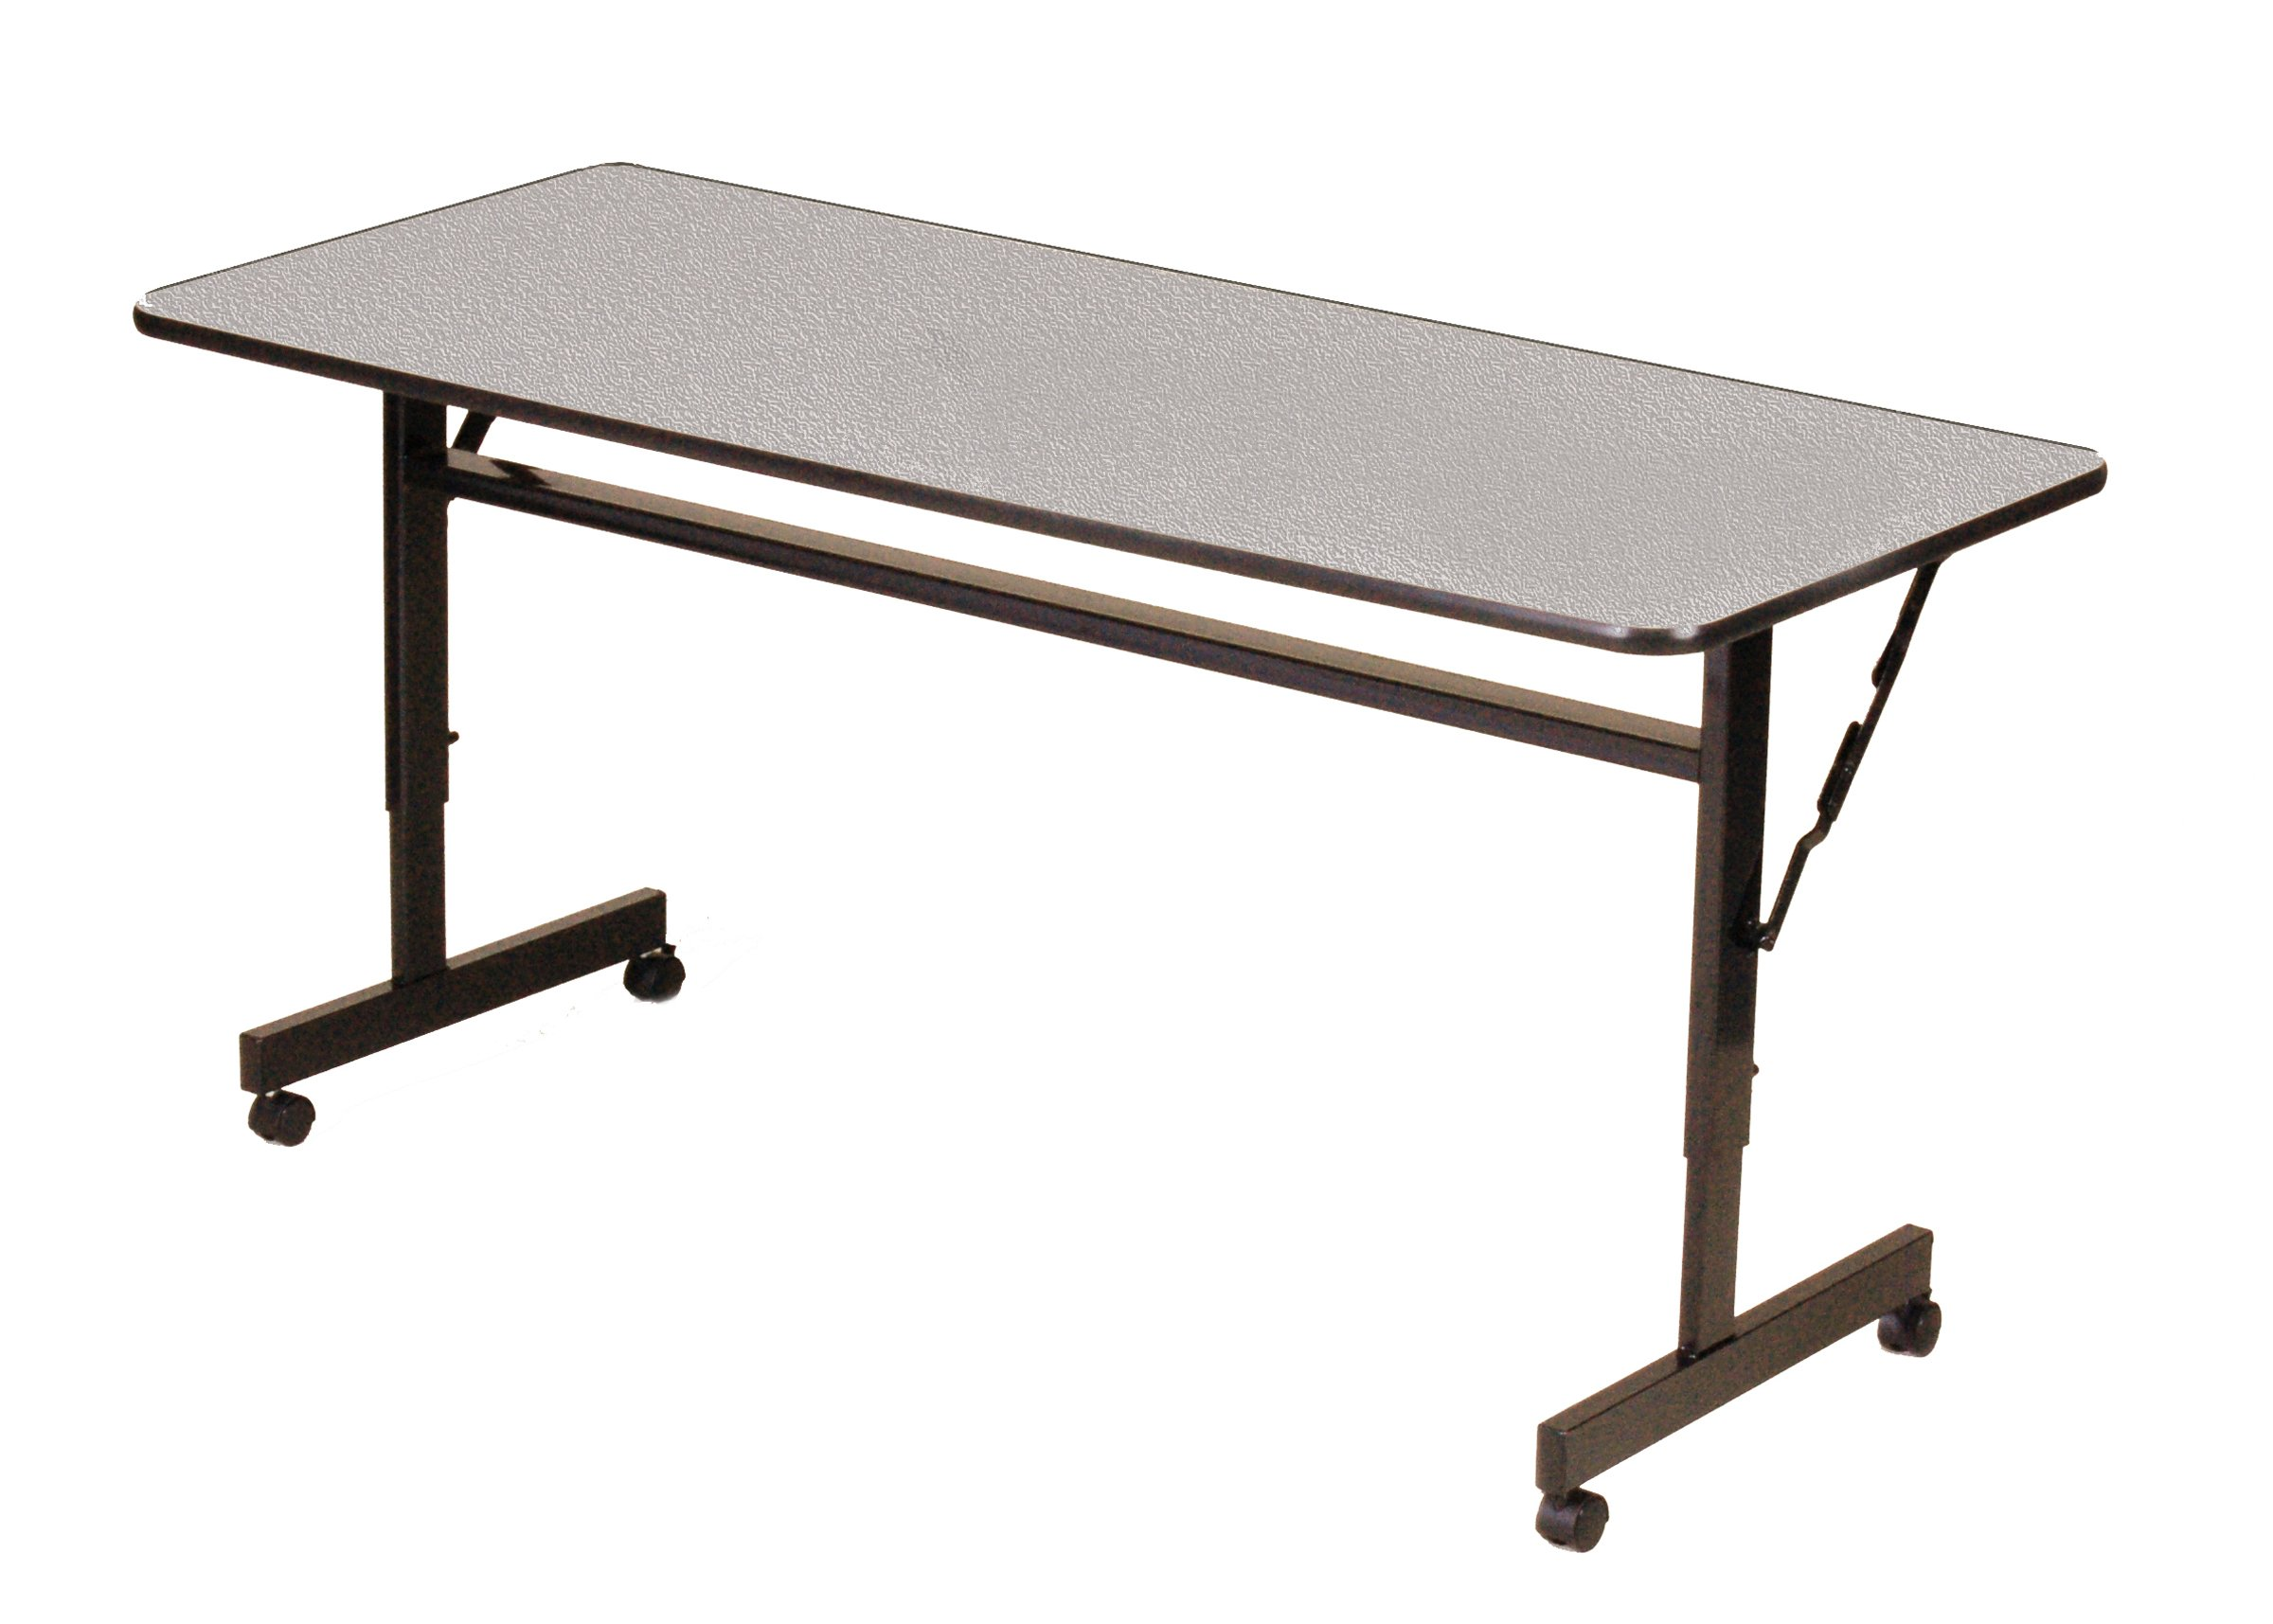 Correll 24''x72'', EconoLine Flip Top Table, Gray Granite Melamine Top, Adjustable Height Work Station, Castors, Folds Flat & Nests (FT2472M-15) by Correll